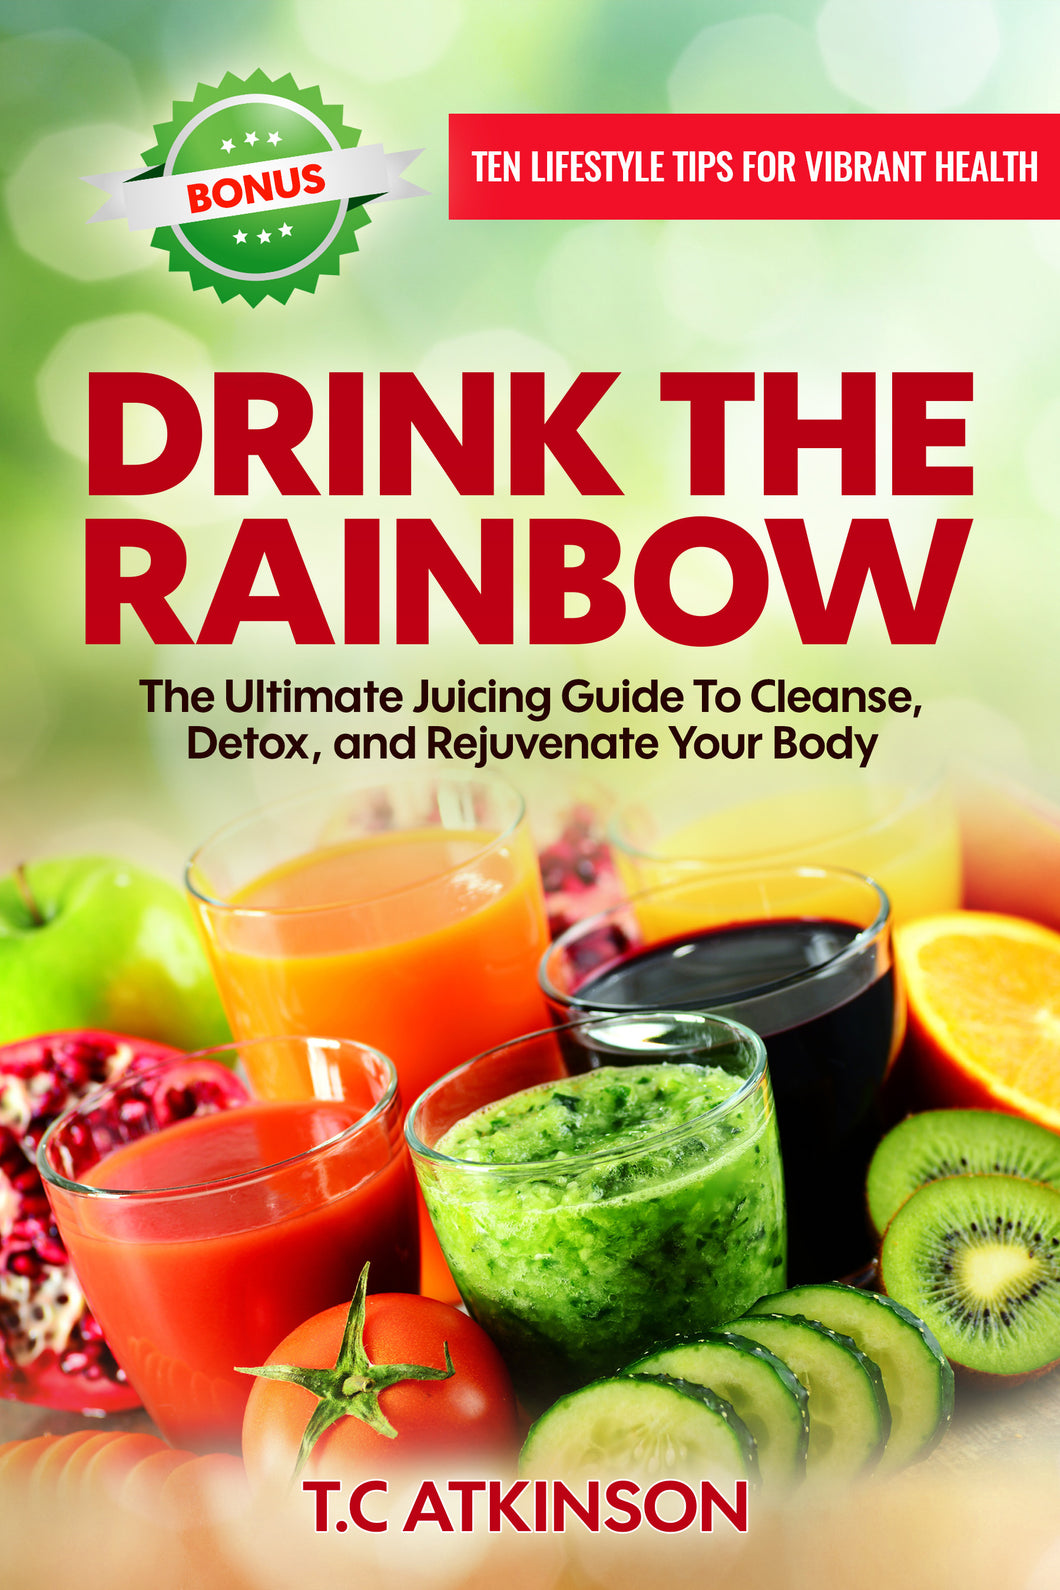 Drink The Rainbow: The Ultimate Juicing Guide To Cleanse, Detox, & Rejuvenate The Body!